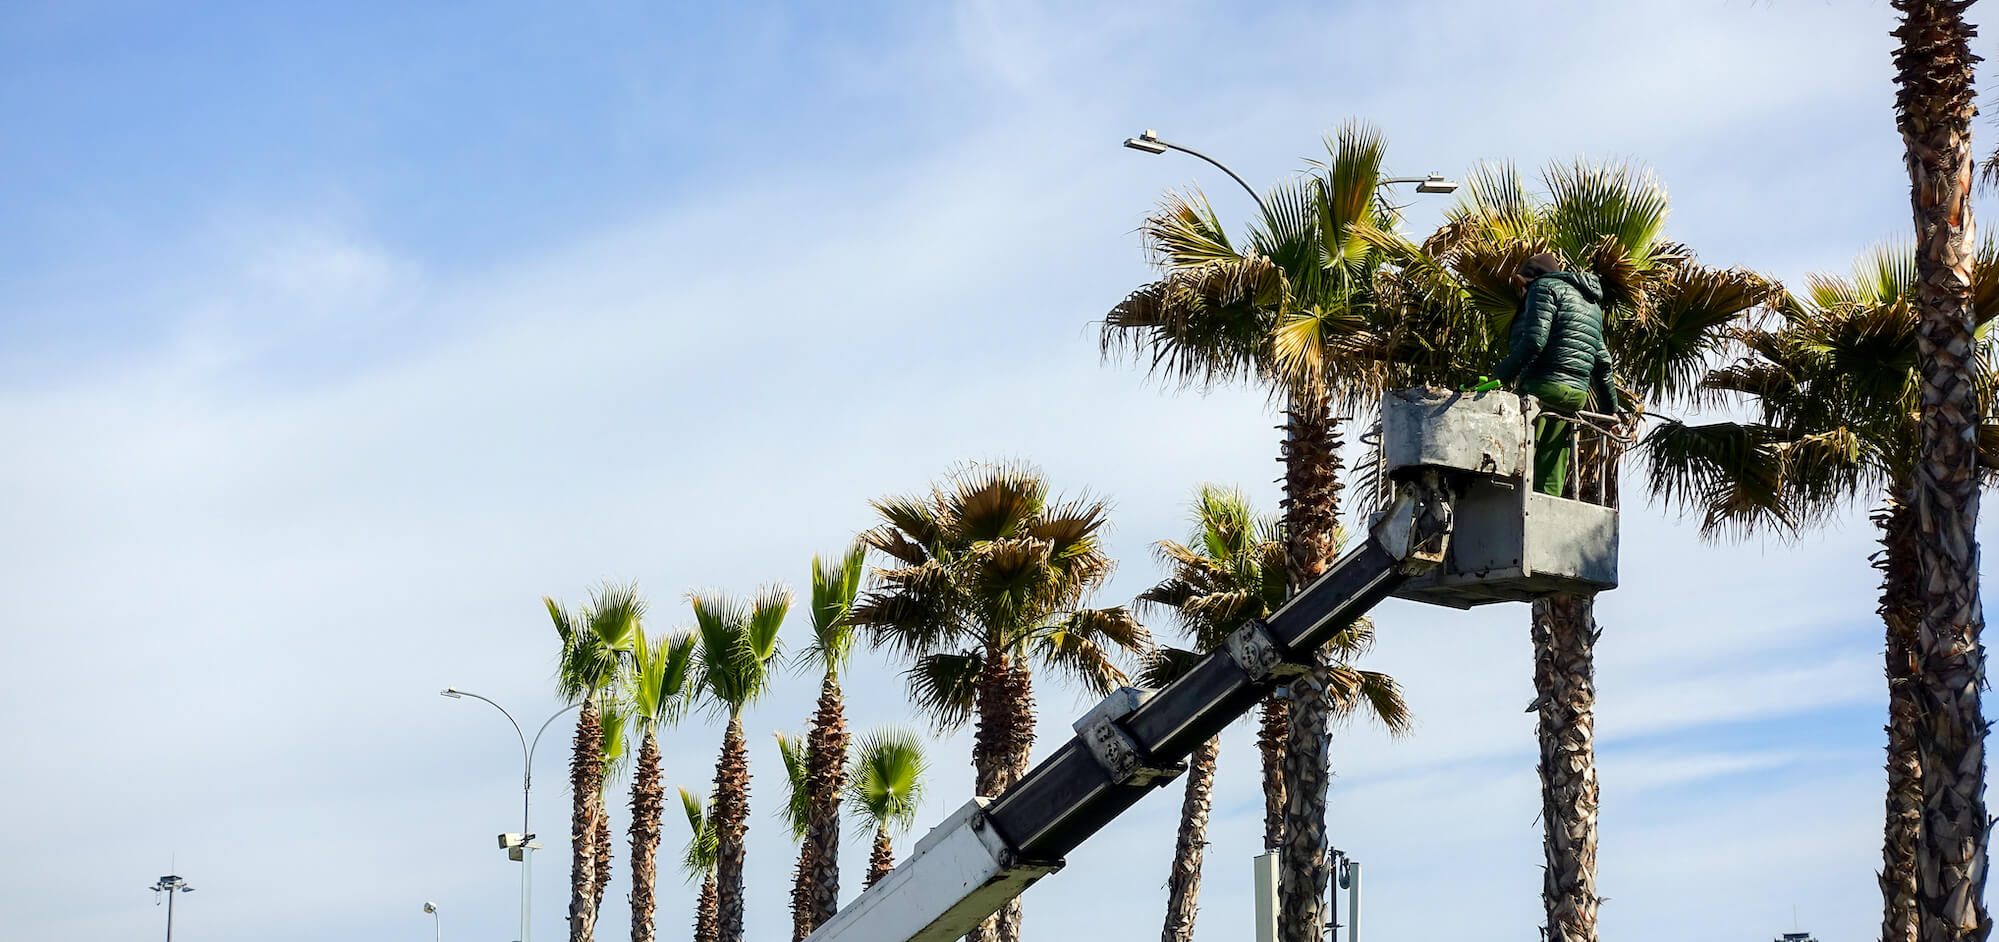 Palm Tree Trimming-Lake Worth Tree Trimming and Tree Removal Services-We Offer Tree Trimming Services, Tree Removal, Tree Pruning, Tree Cutting, Residential and Commercial Tree Trimming Services, Storm Damage, Emergency Tree Removal, Land Clearing, Tree Companies, Tree Care Service, Stump Grinding, and we're the Best Tree Trimming Company Near You Guaranteed!